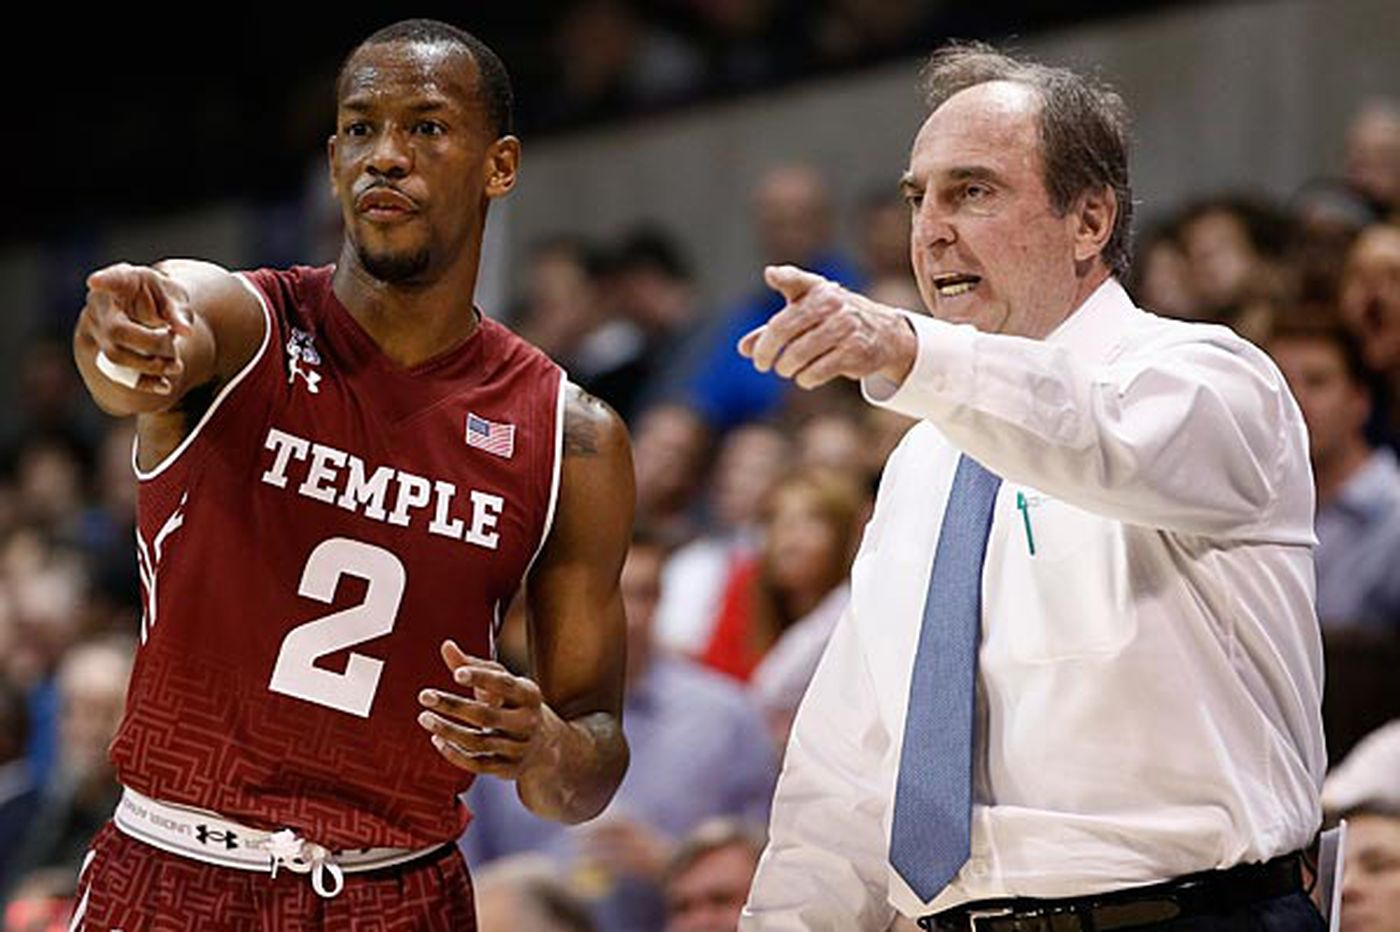 Temple's Will Cummings earns first-team all-AAC